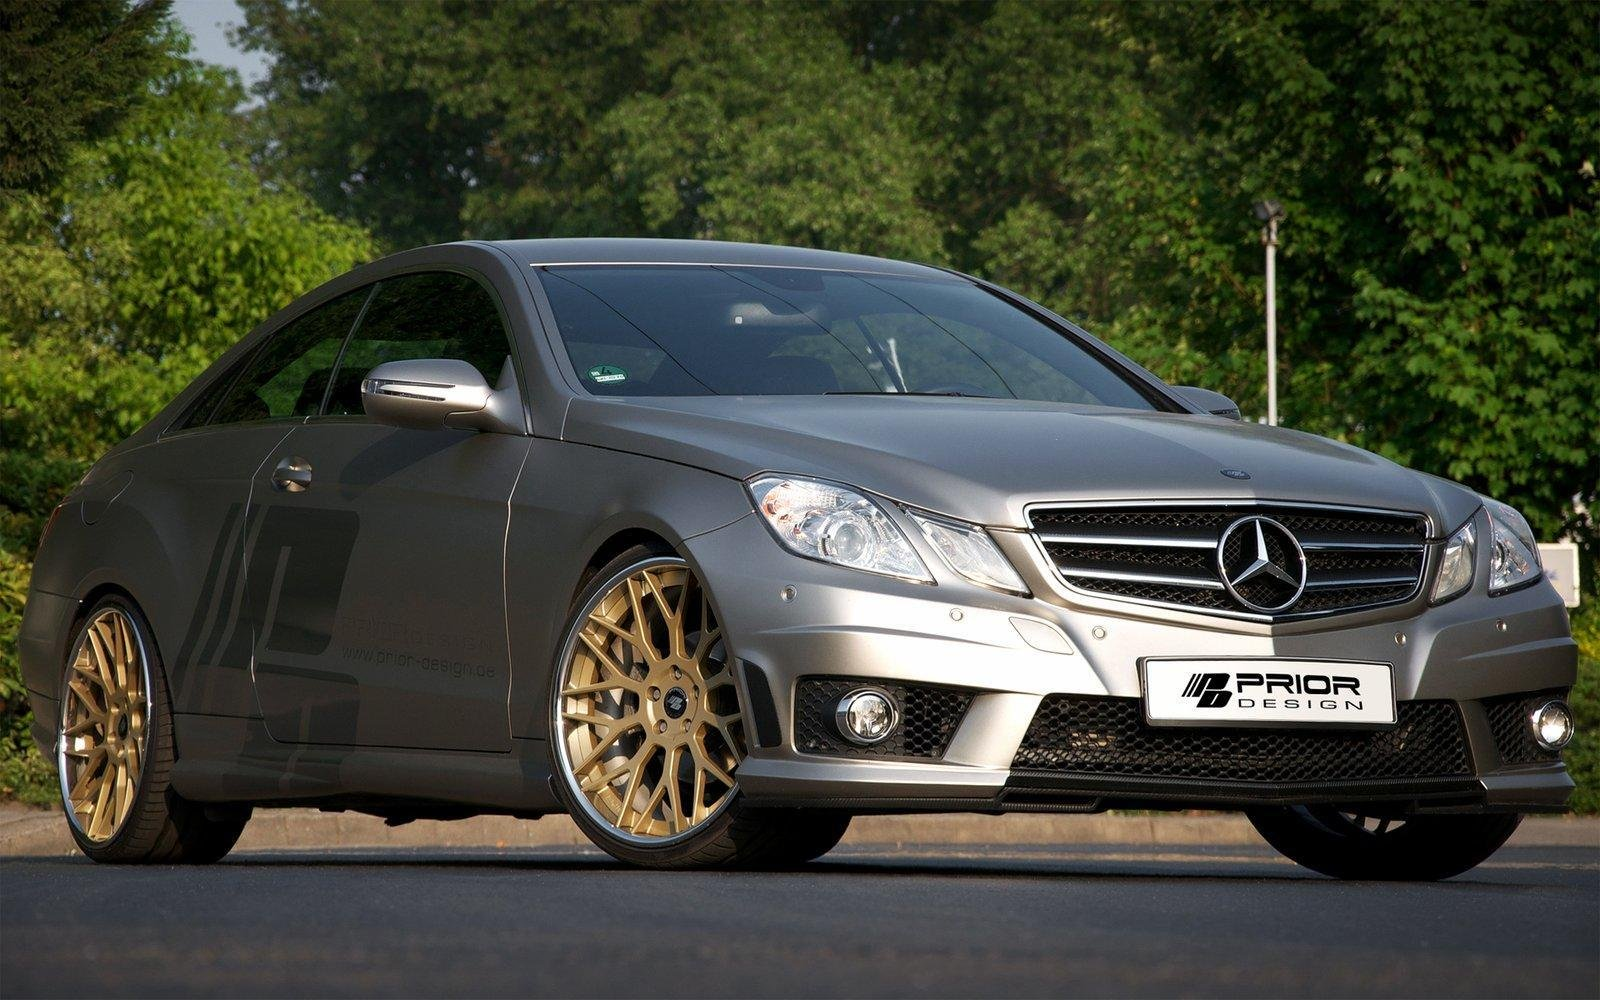 2011 Mercedes E Class Coupe C207 By Prior Design Top Speed